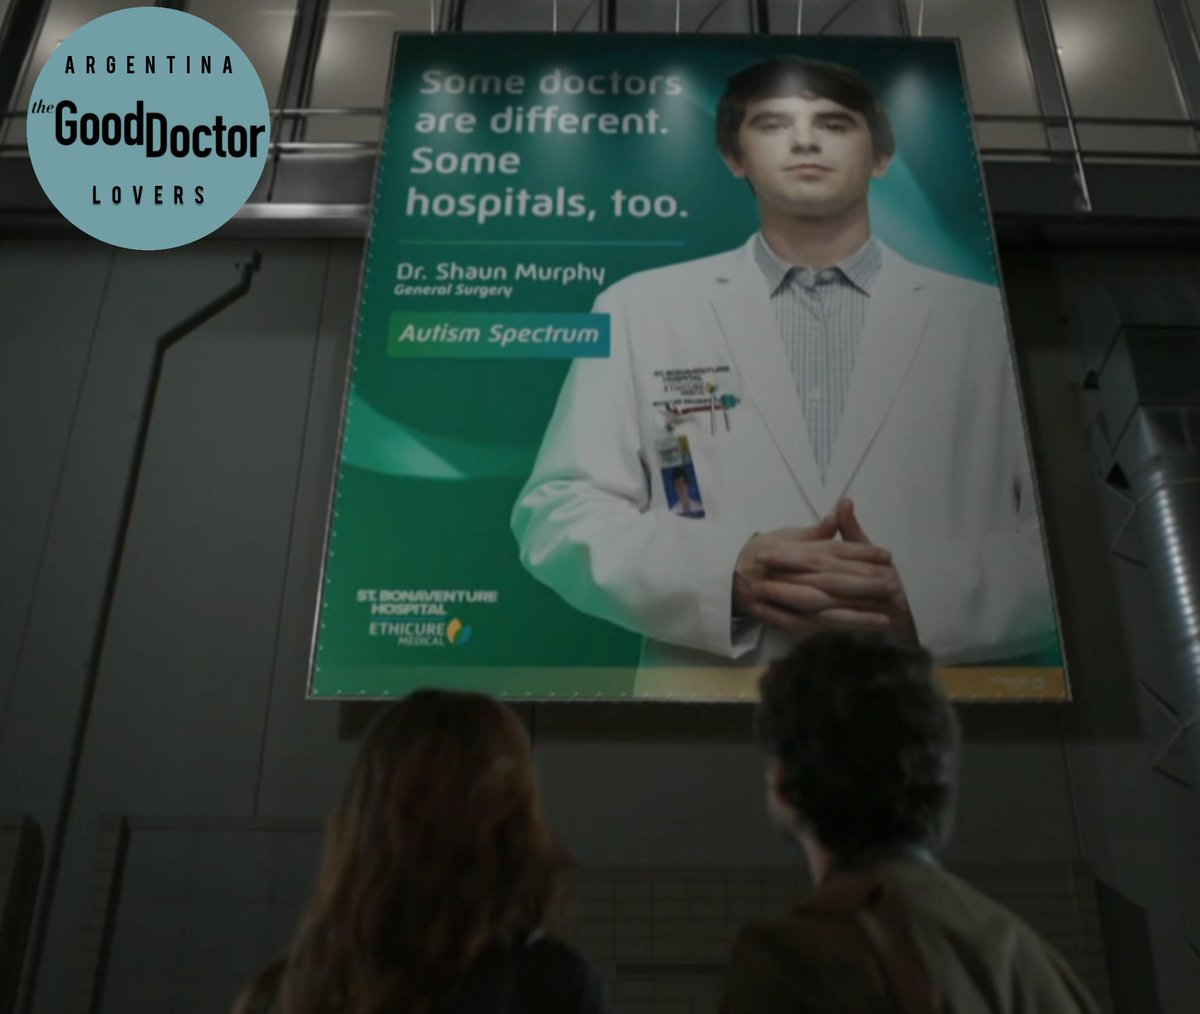 #TheGoodDoctor fans. Let's talk about the last episode, specially  how little our love for #SalenMorrison lasted. It lasted until we saw the sign. From that moment we realized that this is not gonna be easy. What do you think?  @GoodDoctorABC  @gooddrwriters  @SPTV  @SLfrom